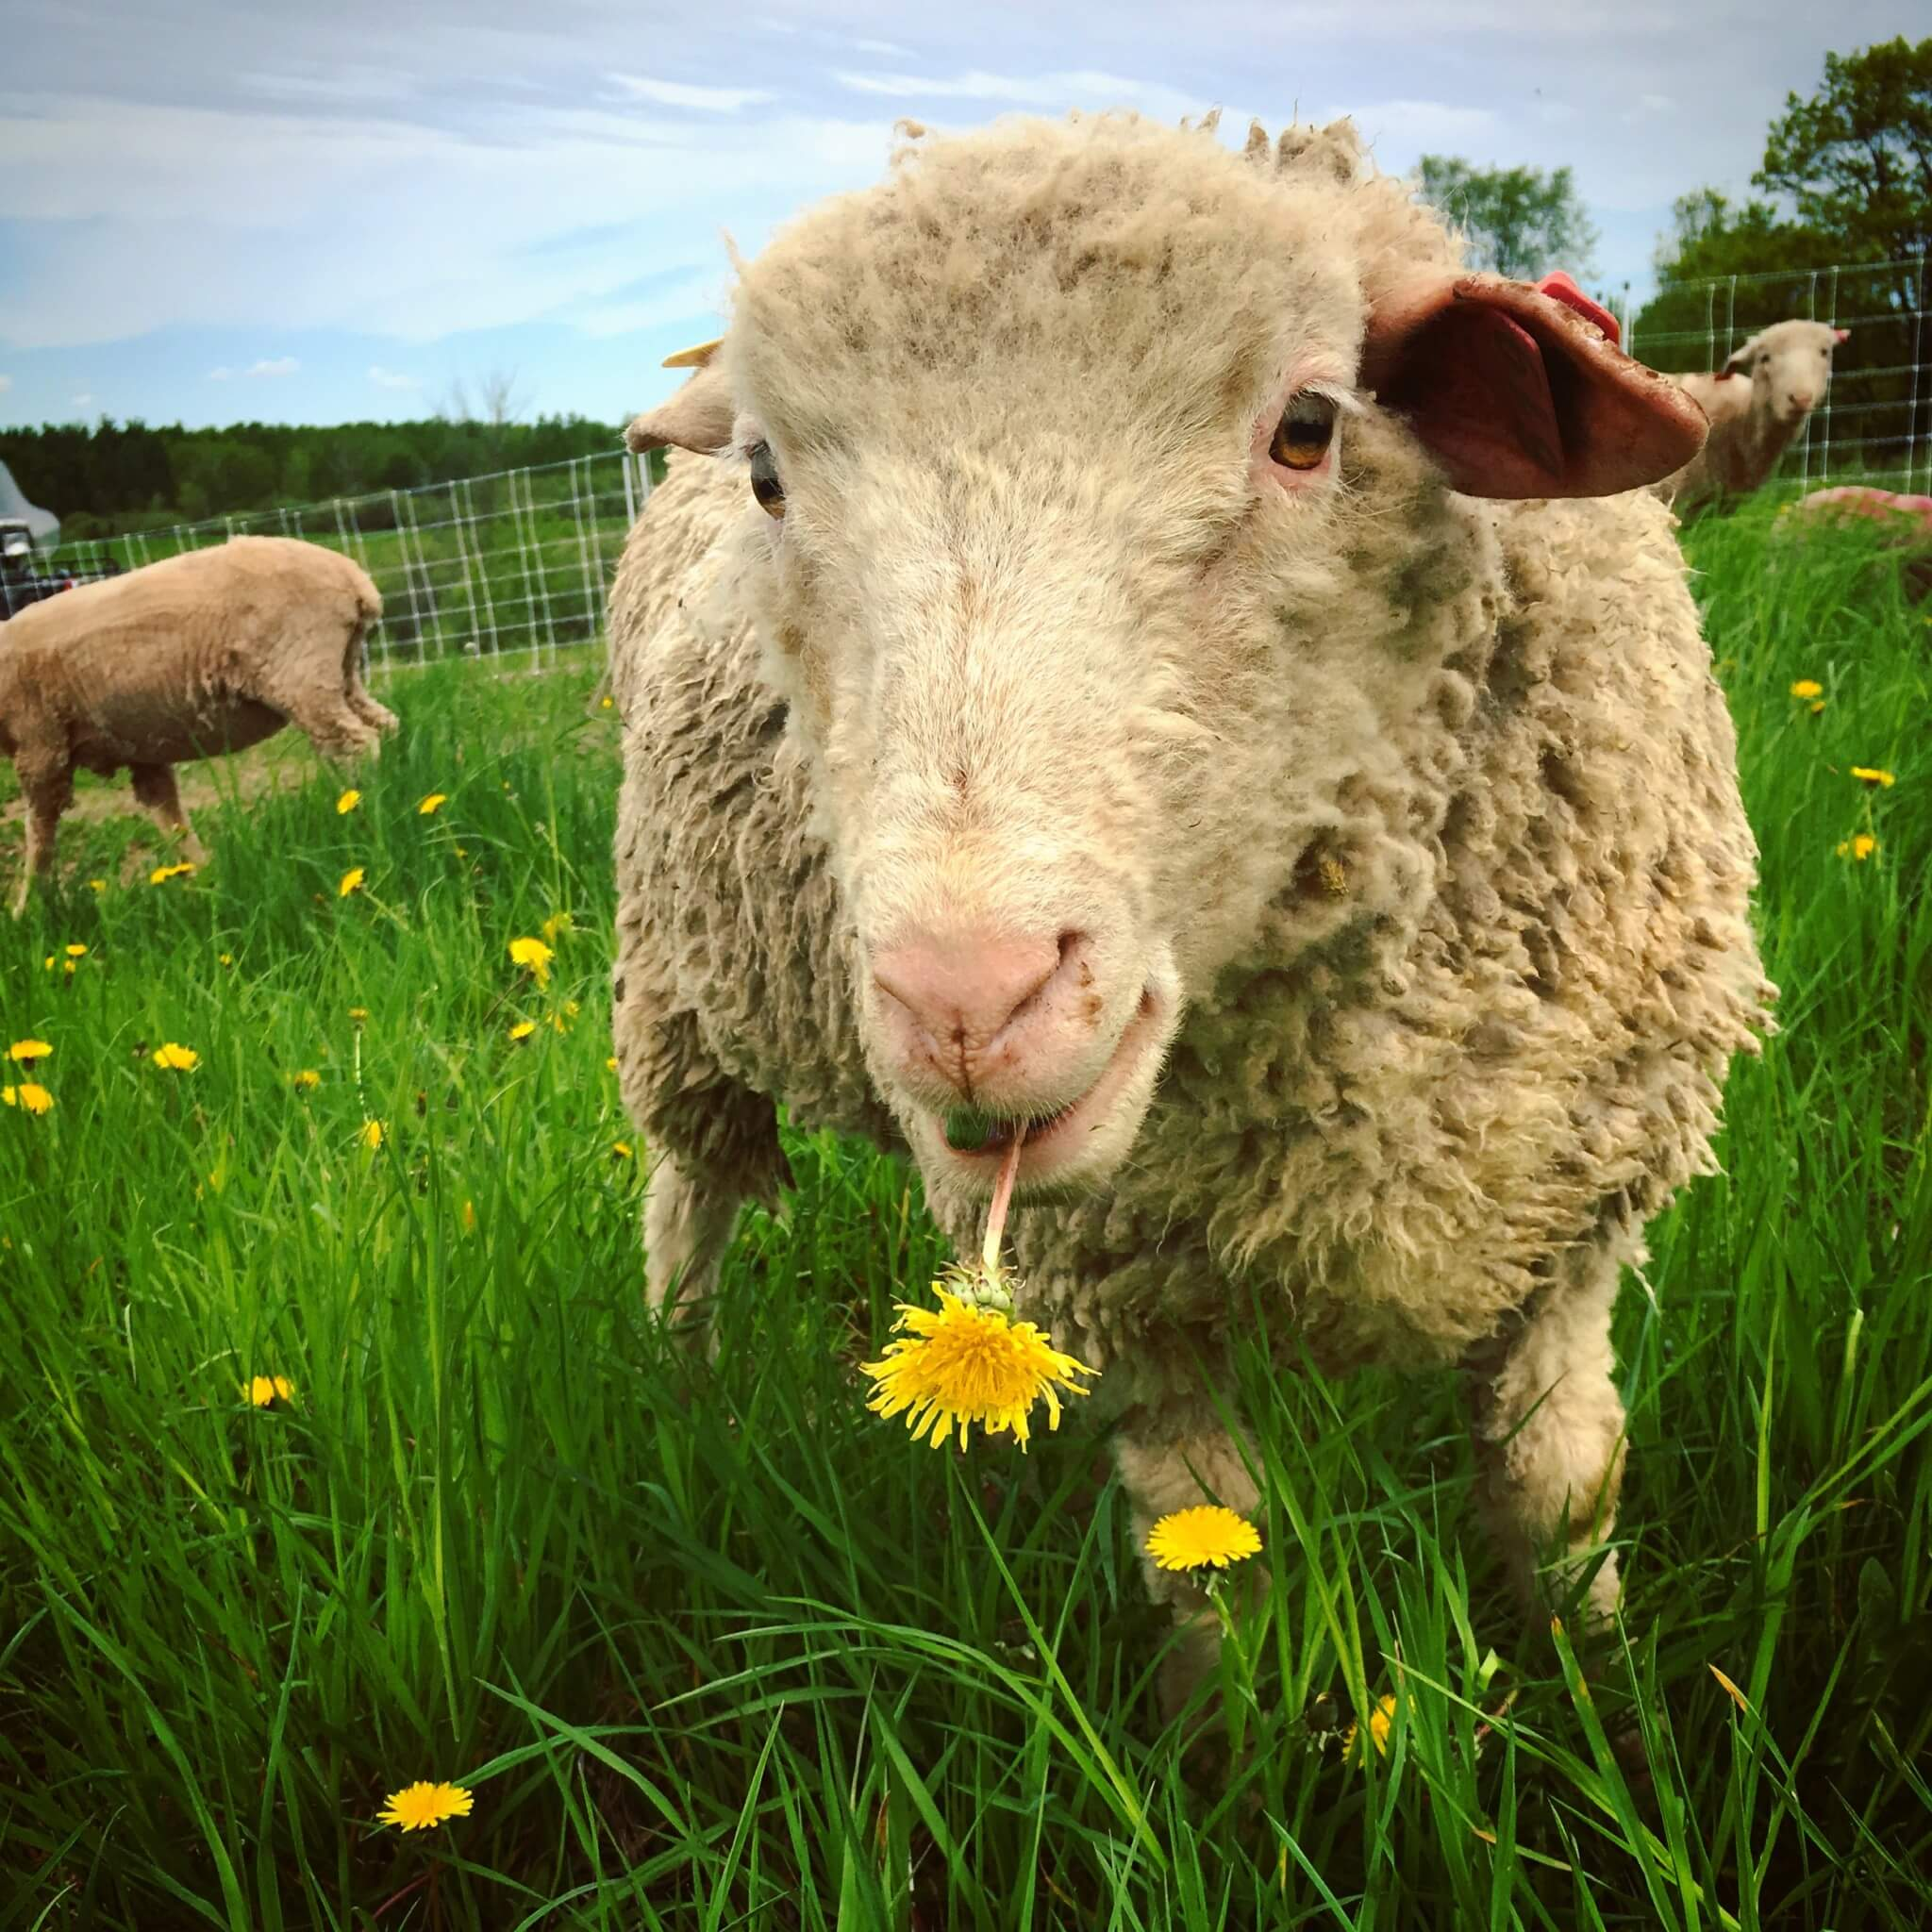 Sheep named Thomas standing in a grassy field eating dandelions.